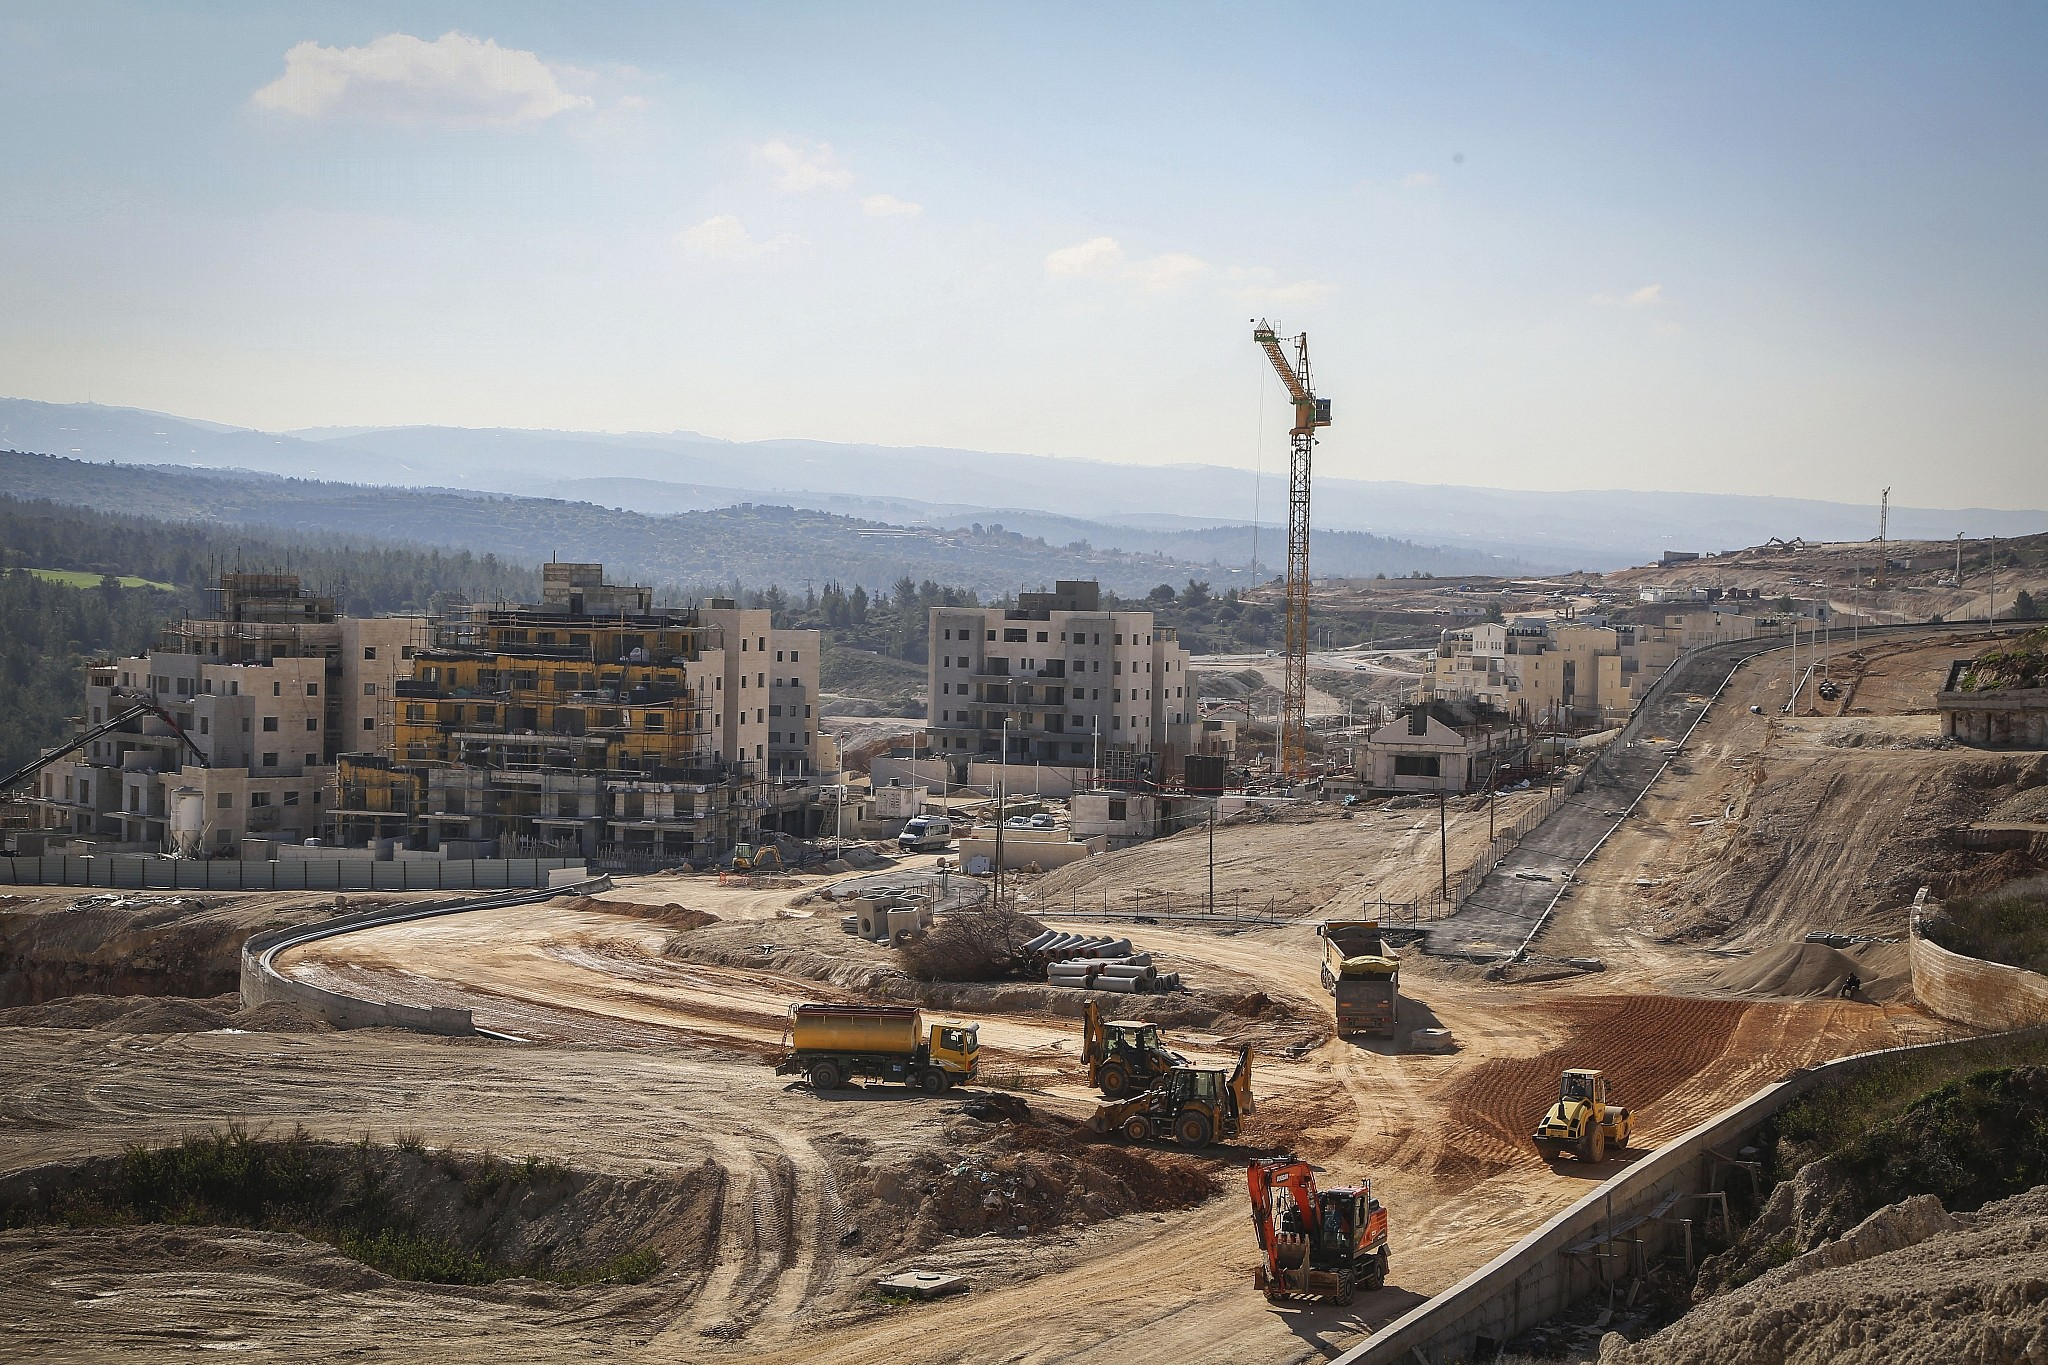 Beit Shemesh New Construction: OECD Warns Israel's Housing Bubble Could Pop, Predicts